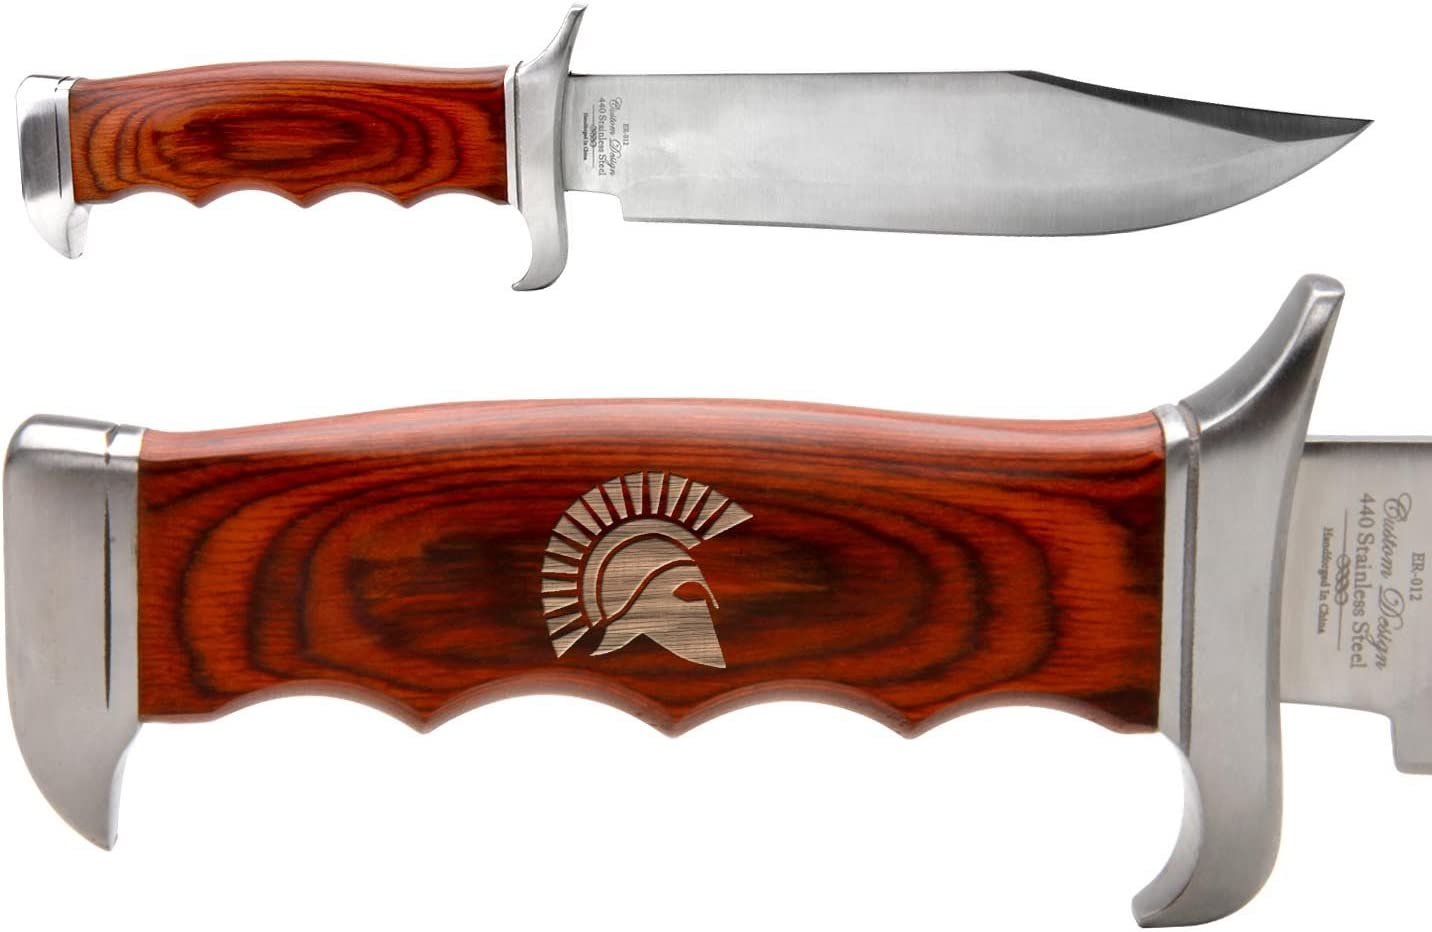 Elk Ridge 12.5 Outdoor Hunting Fixed Blade Full Tang Bowie Knife